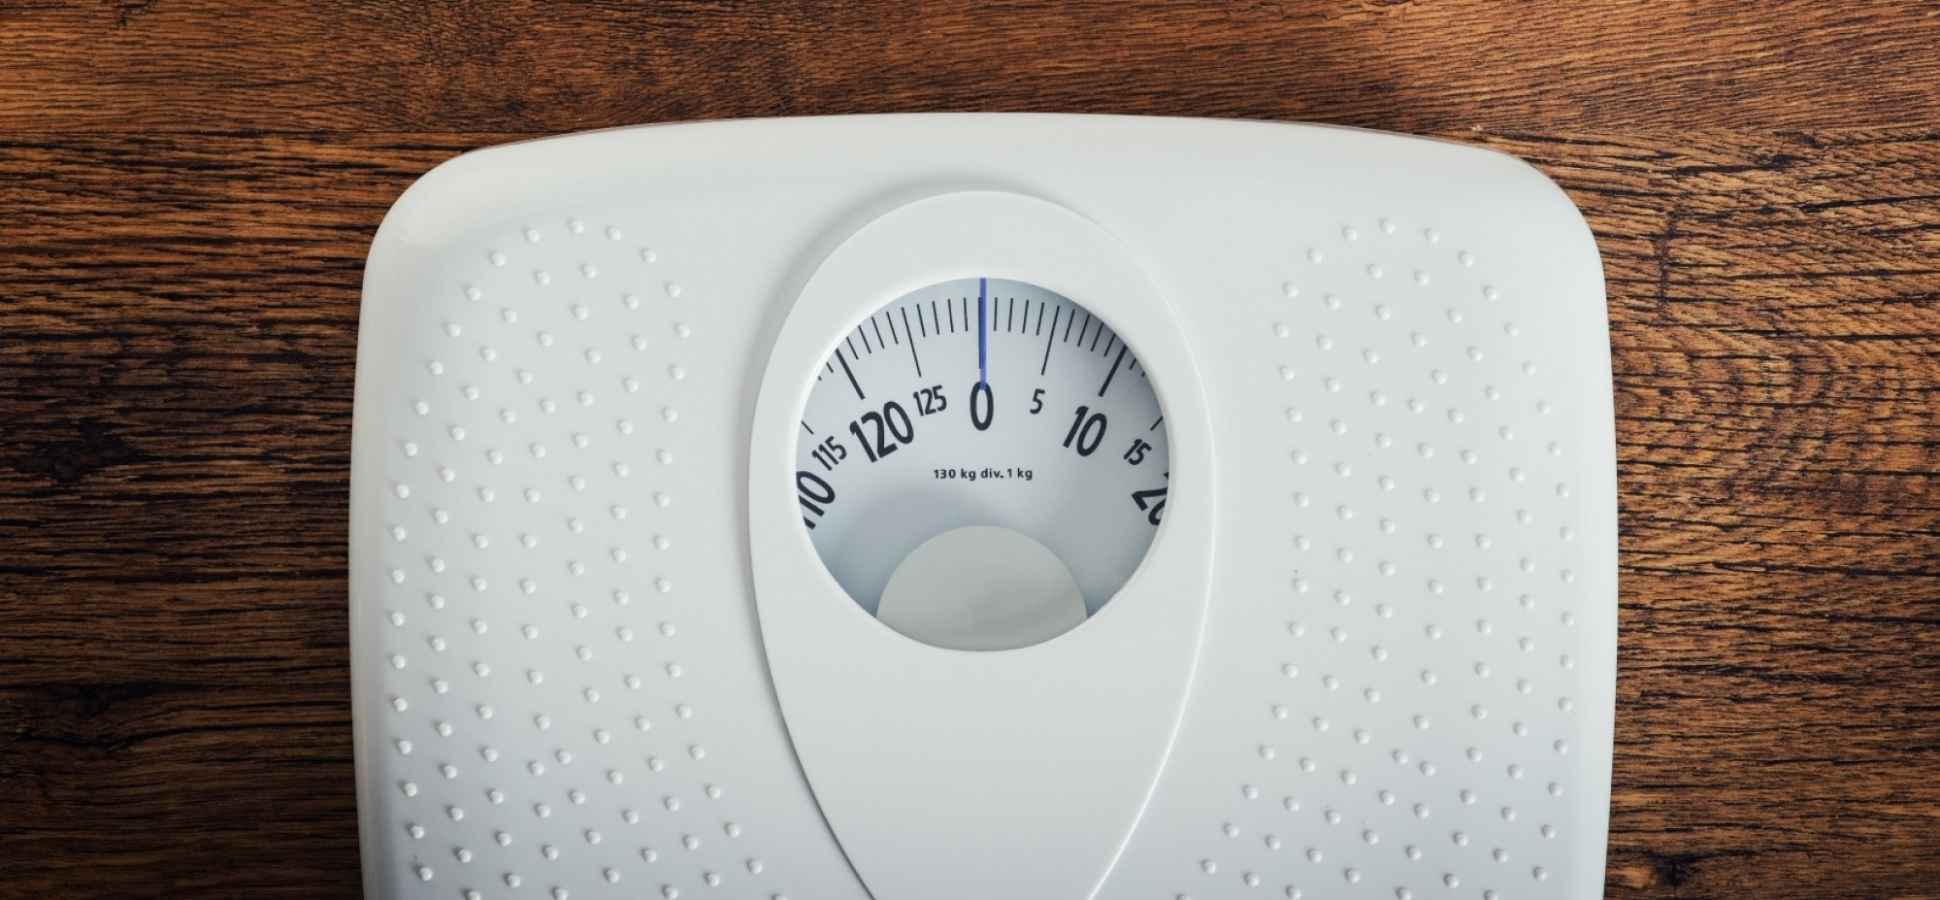 Want to Lose Weight and Get in Better Shape? Science Says Do 1 Thing First